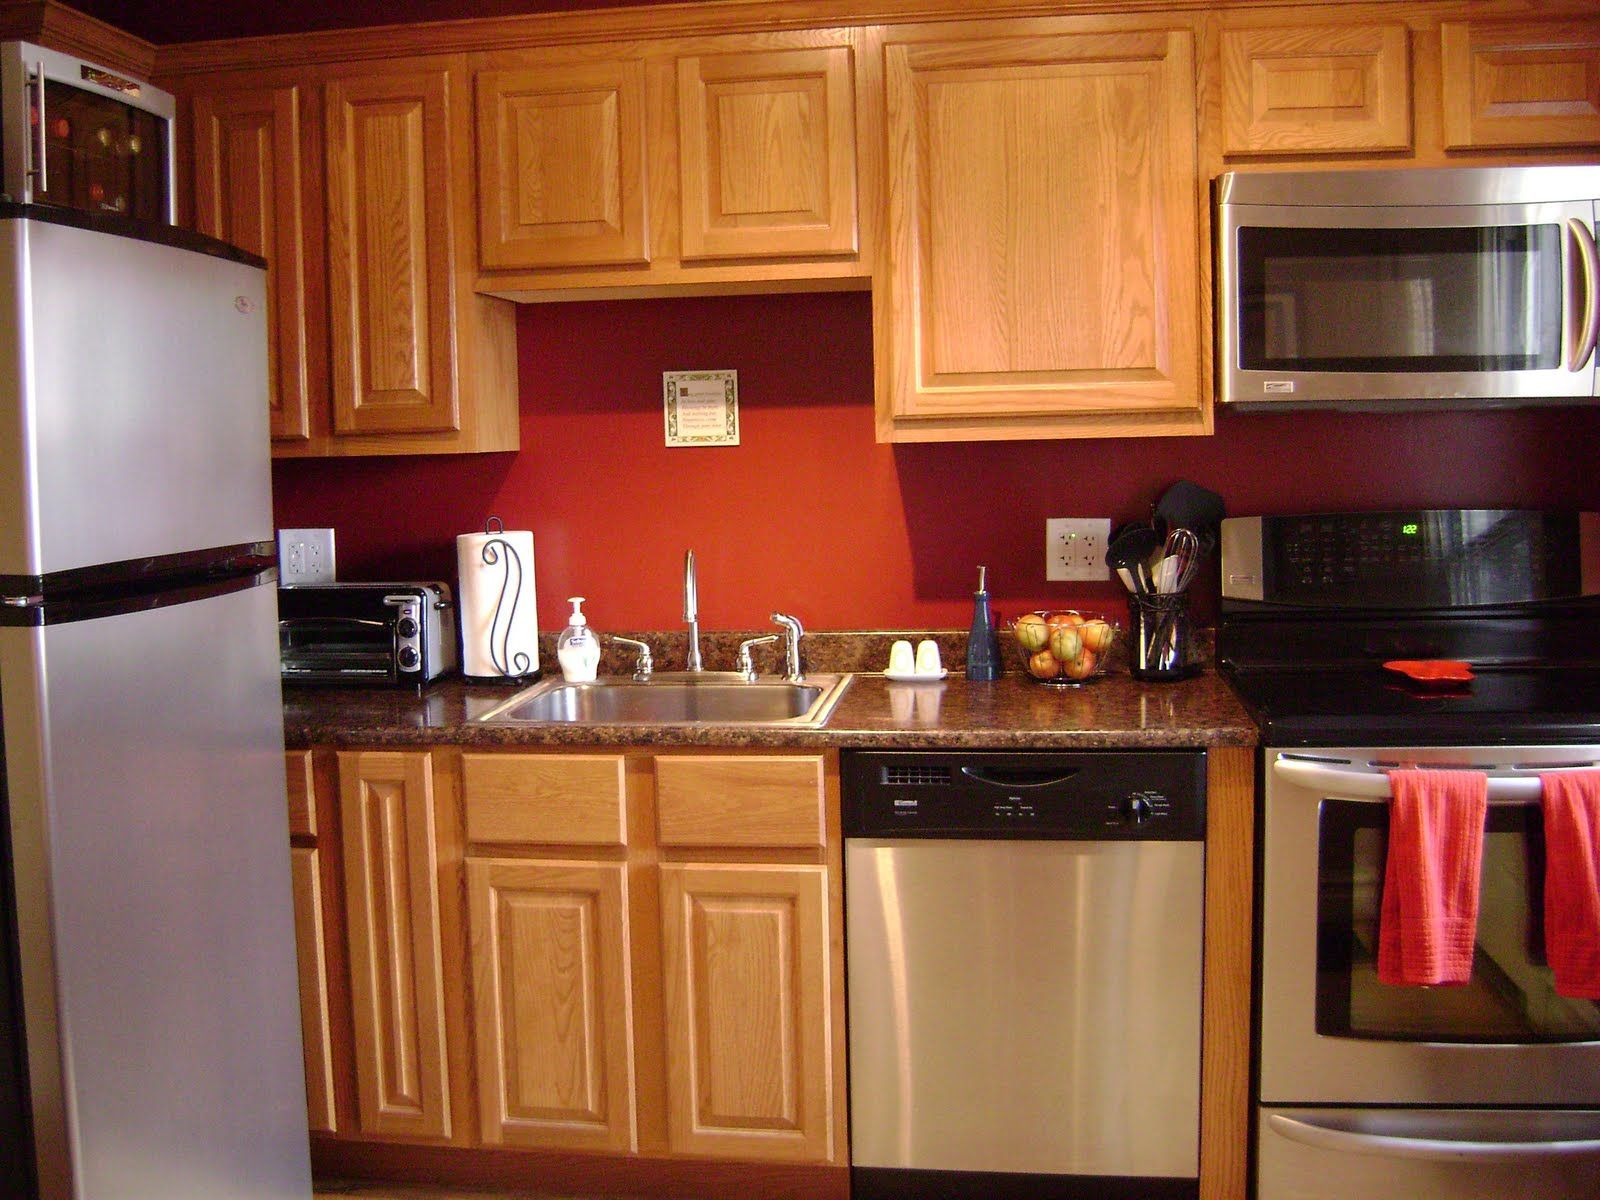 Kitchen wall color ideas with oak cabinets design idea for Kitchen wall color ideas